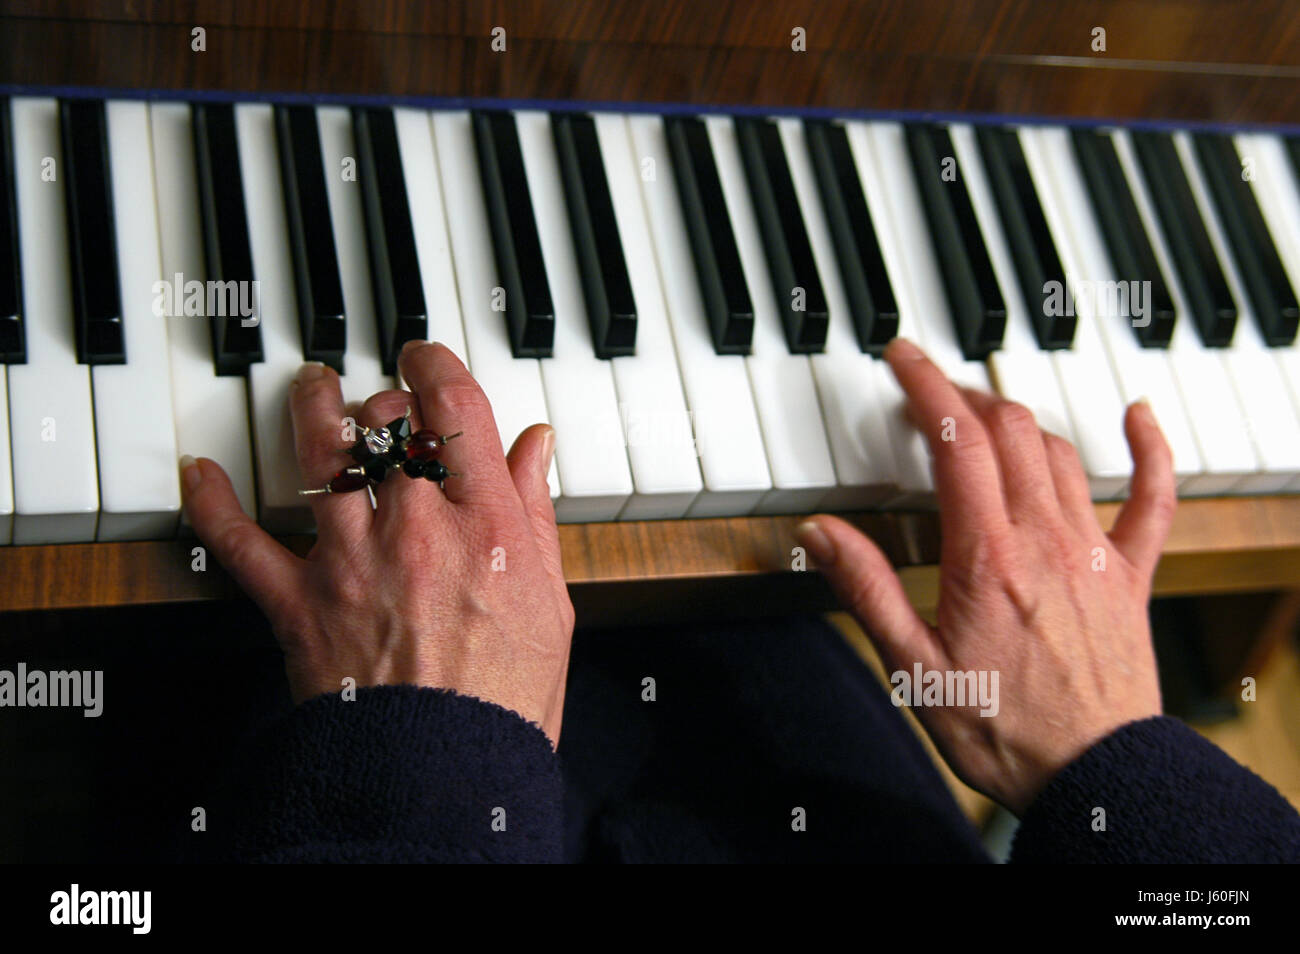 motion postponement moving movement hand hands keyboard ring piano hand hands - Stock Image